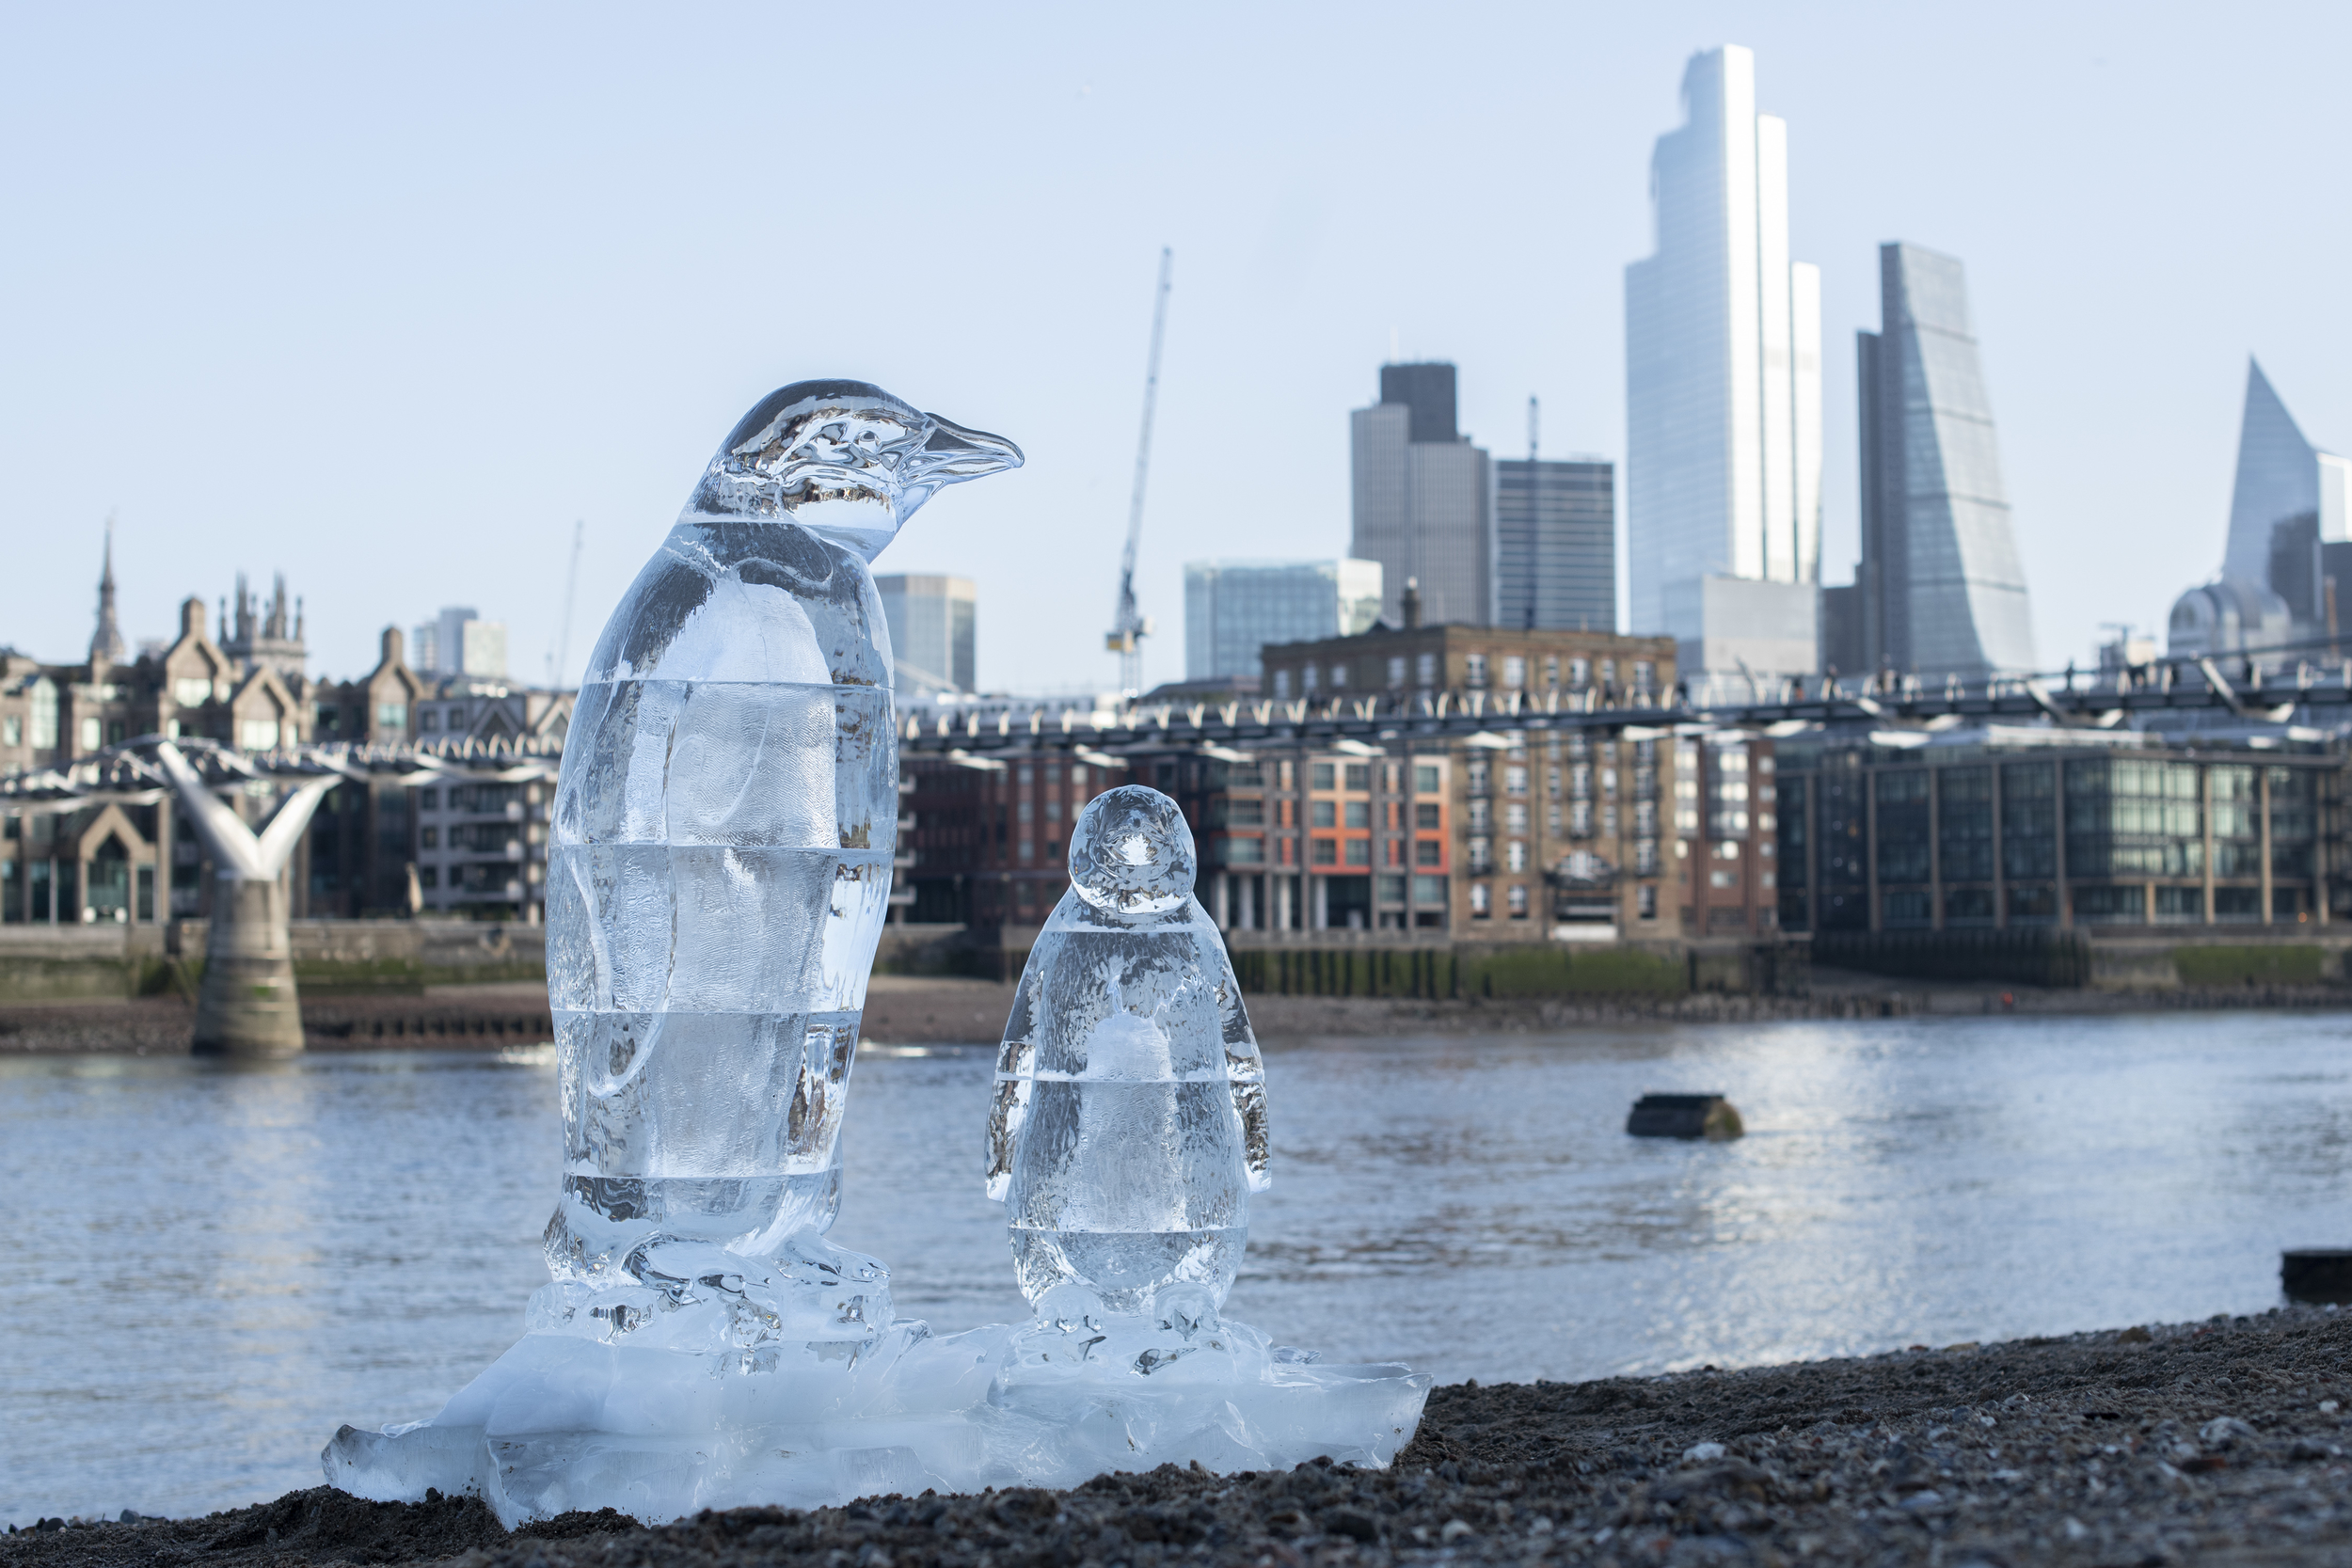 Two ice scuplture penguins melt on the banks of the River Thames with the city and Millennium footbridge in the background